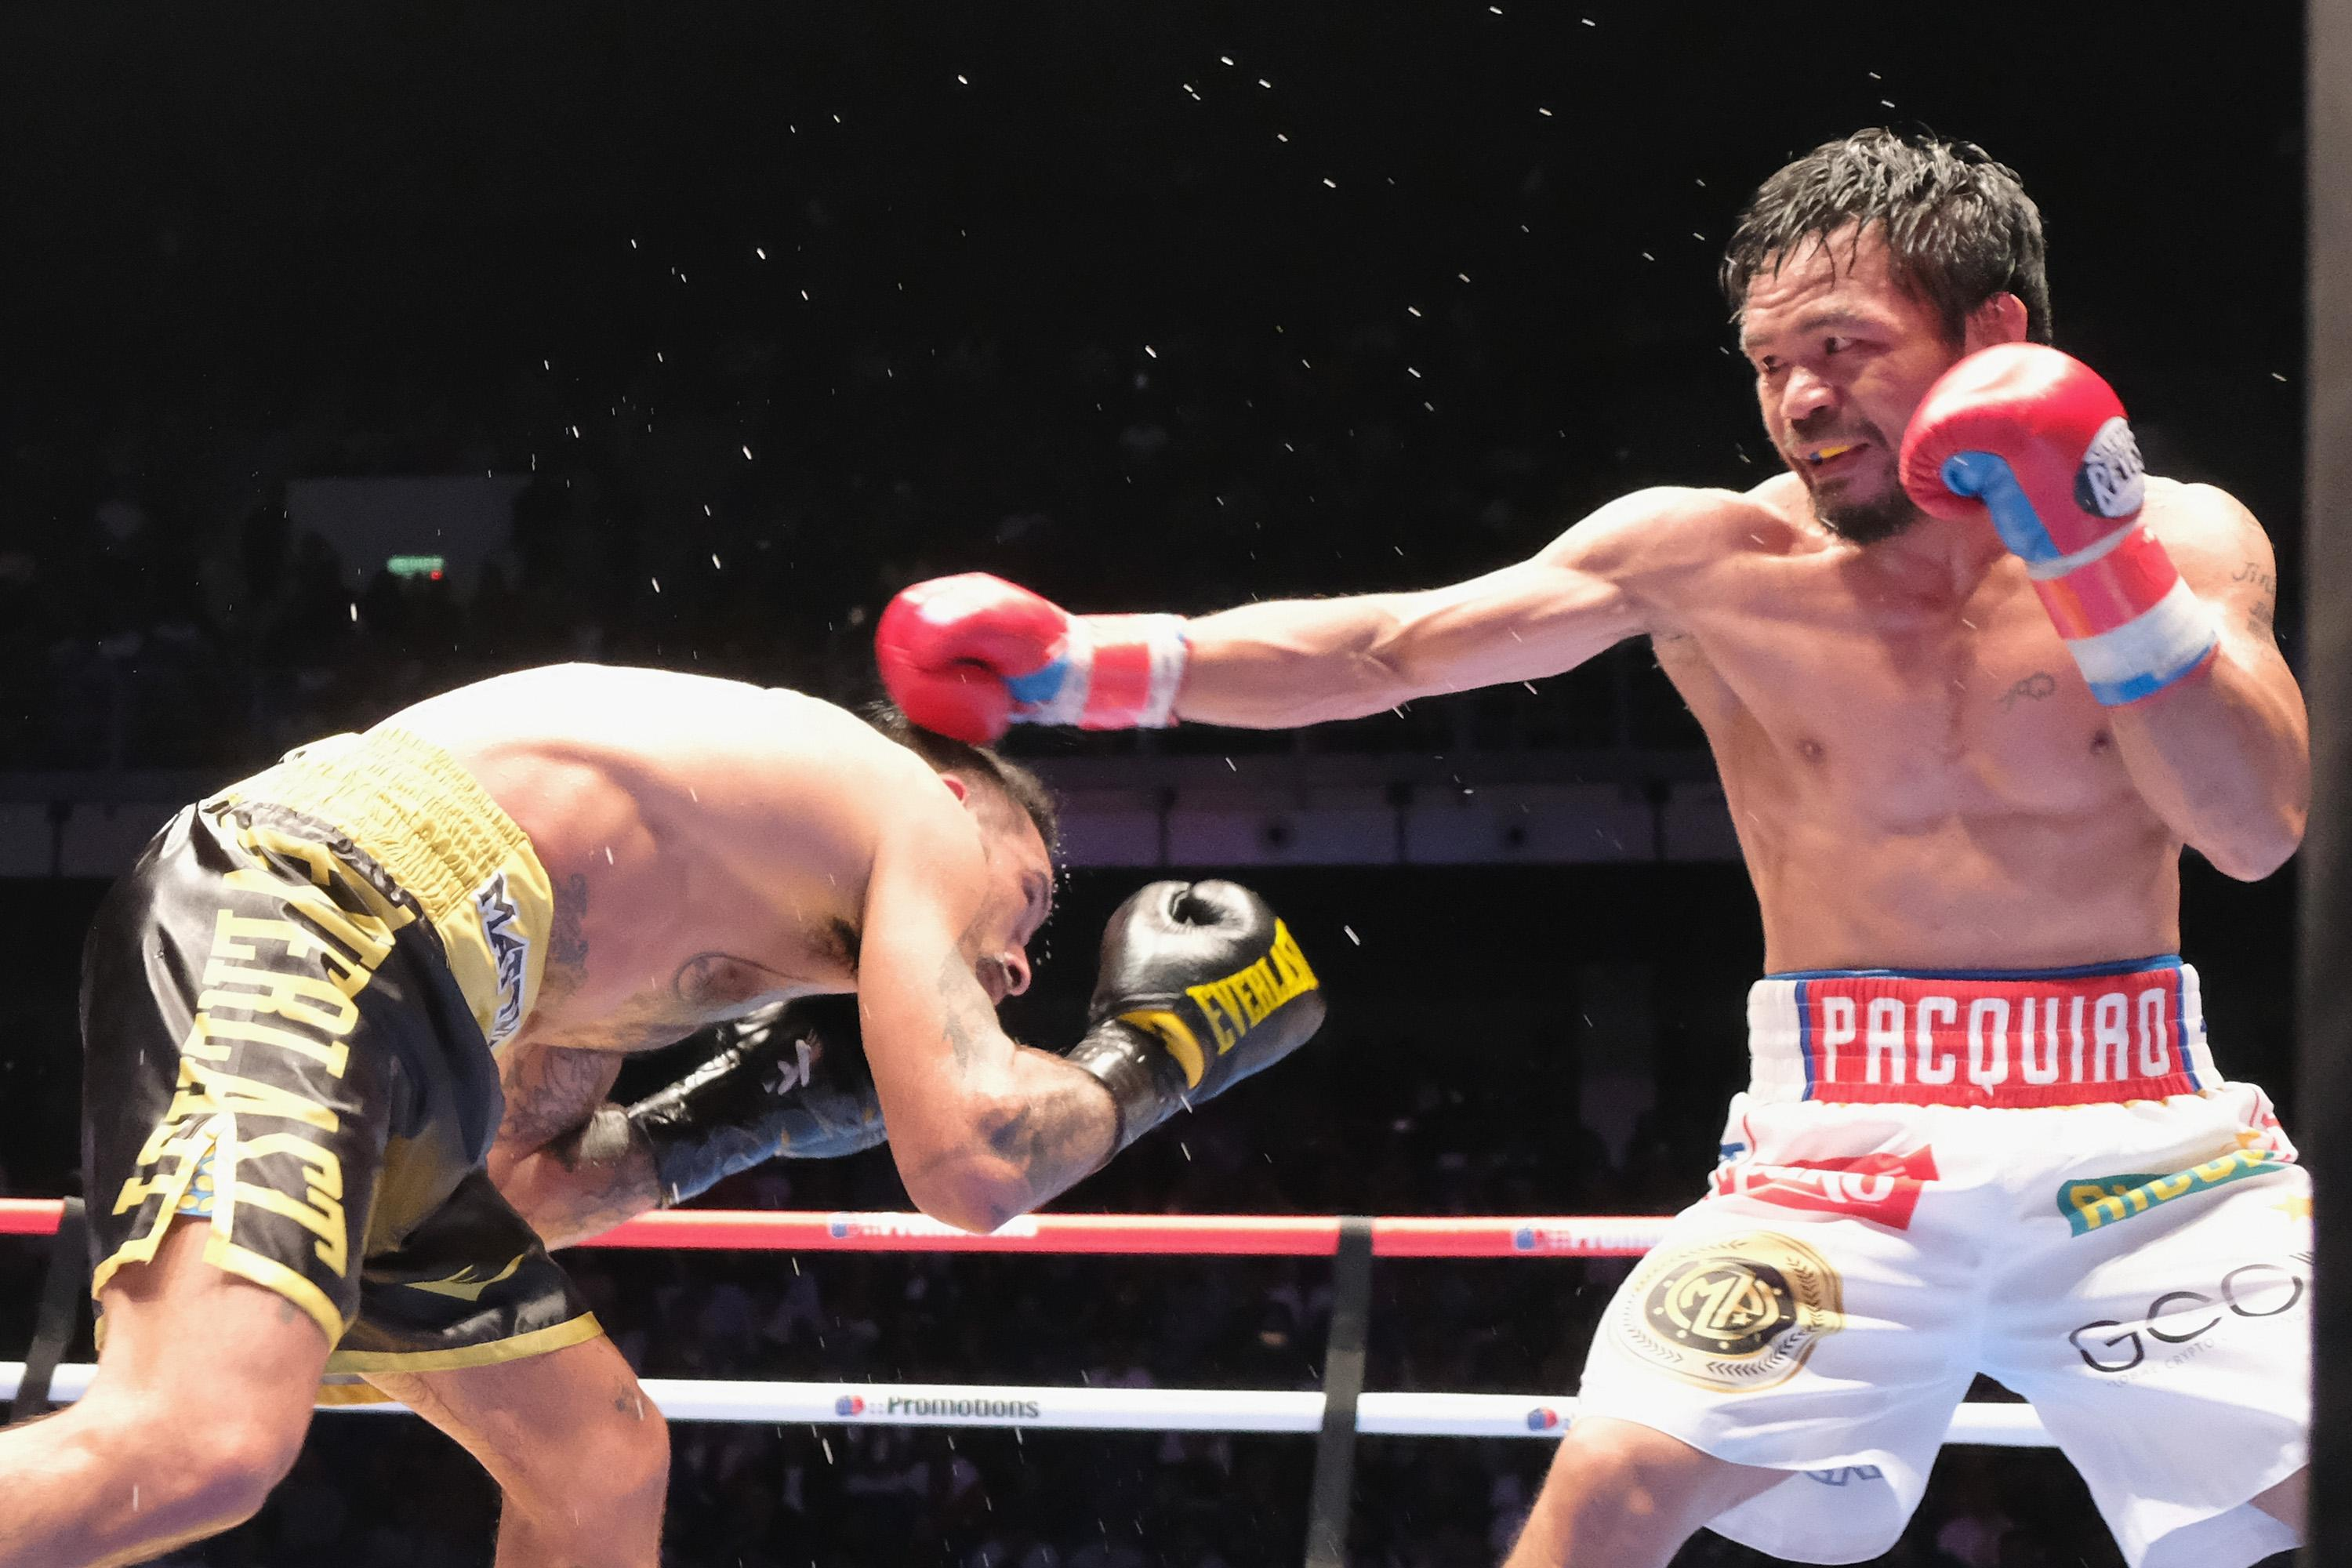 Pacquiao rolled back the years in Kuala Lumpur to produce a stunning display